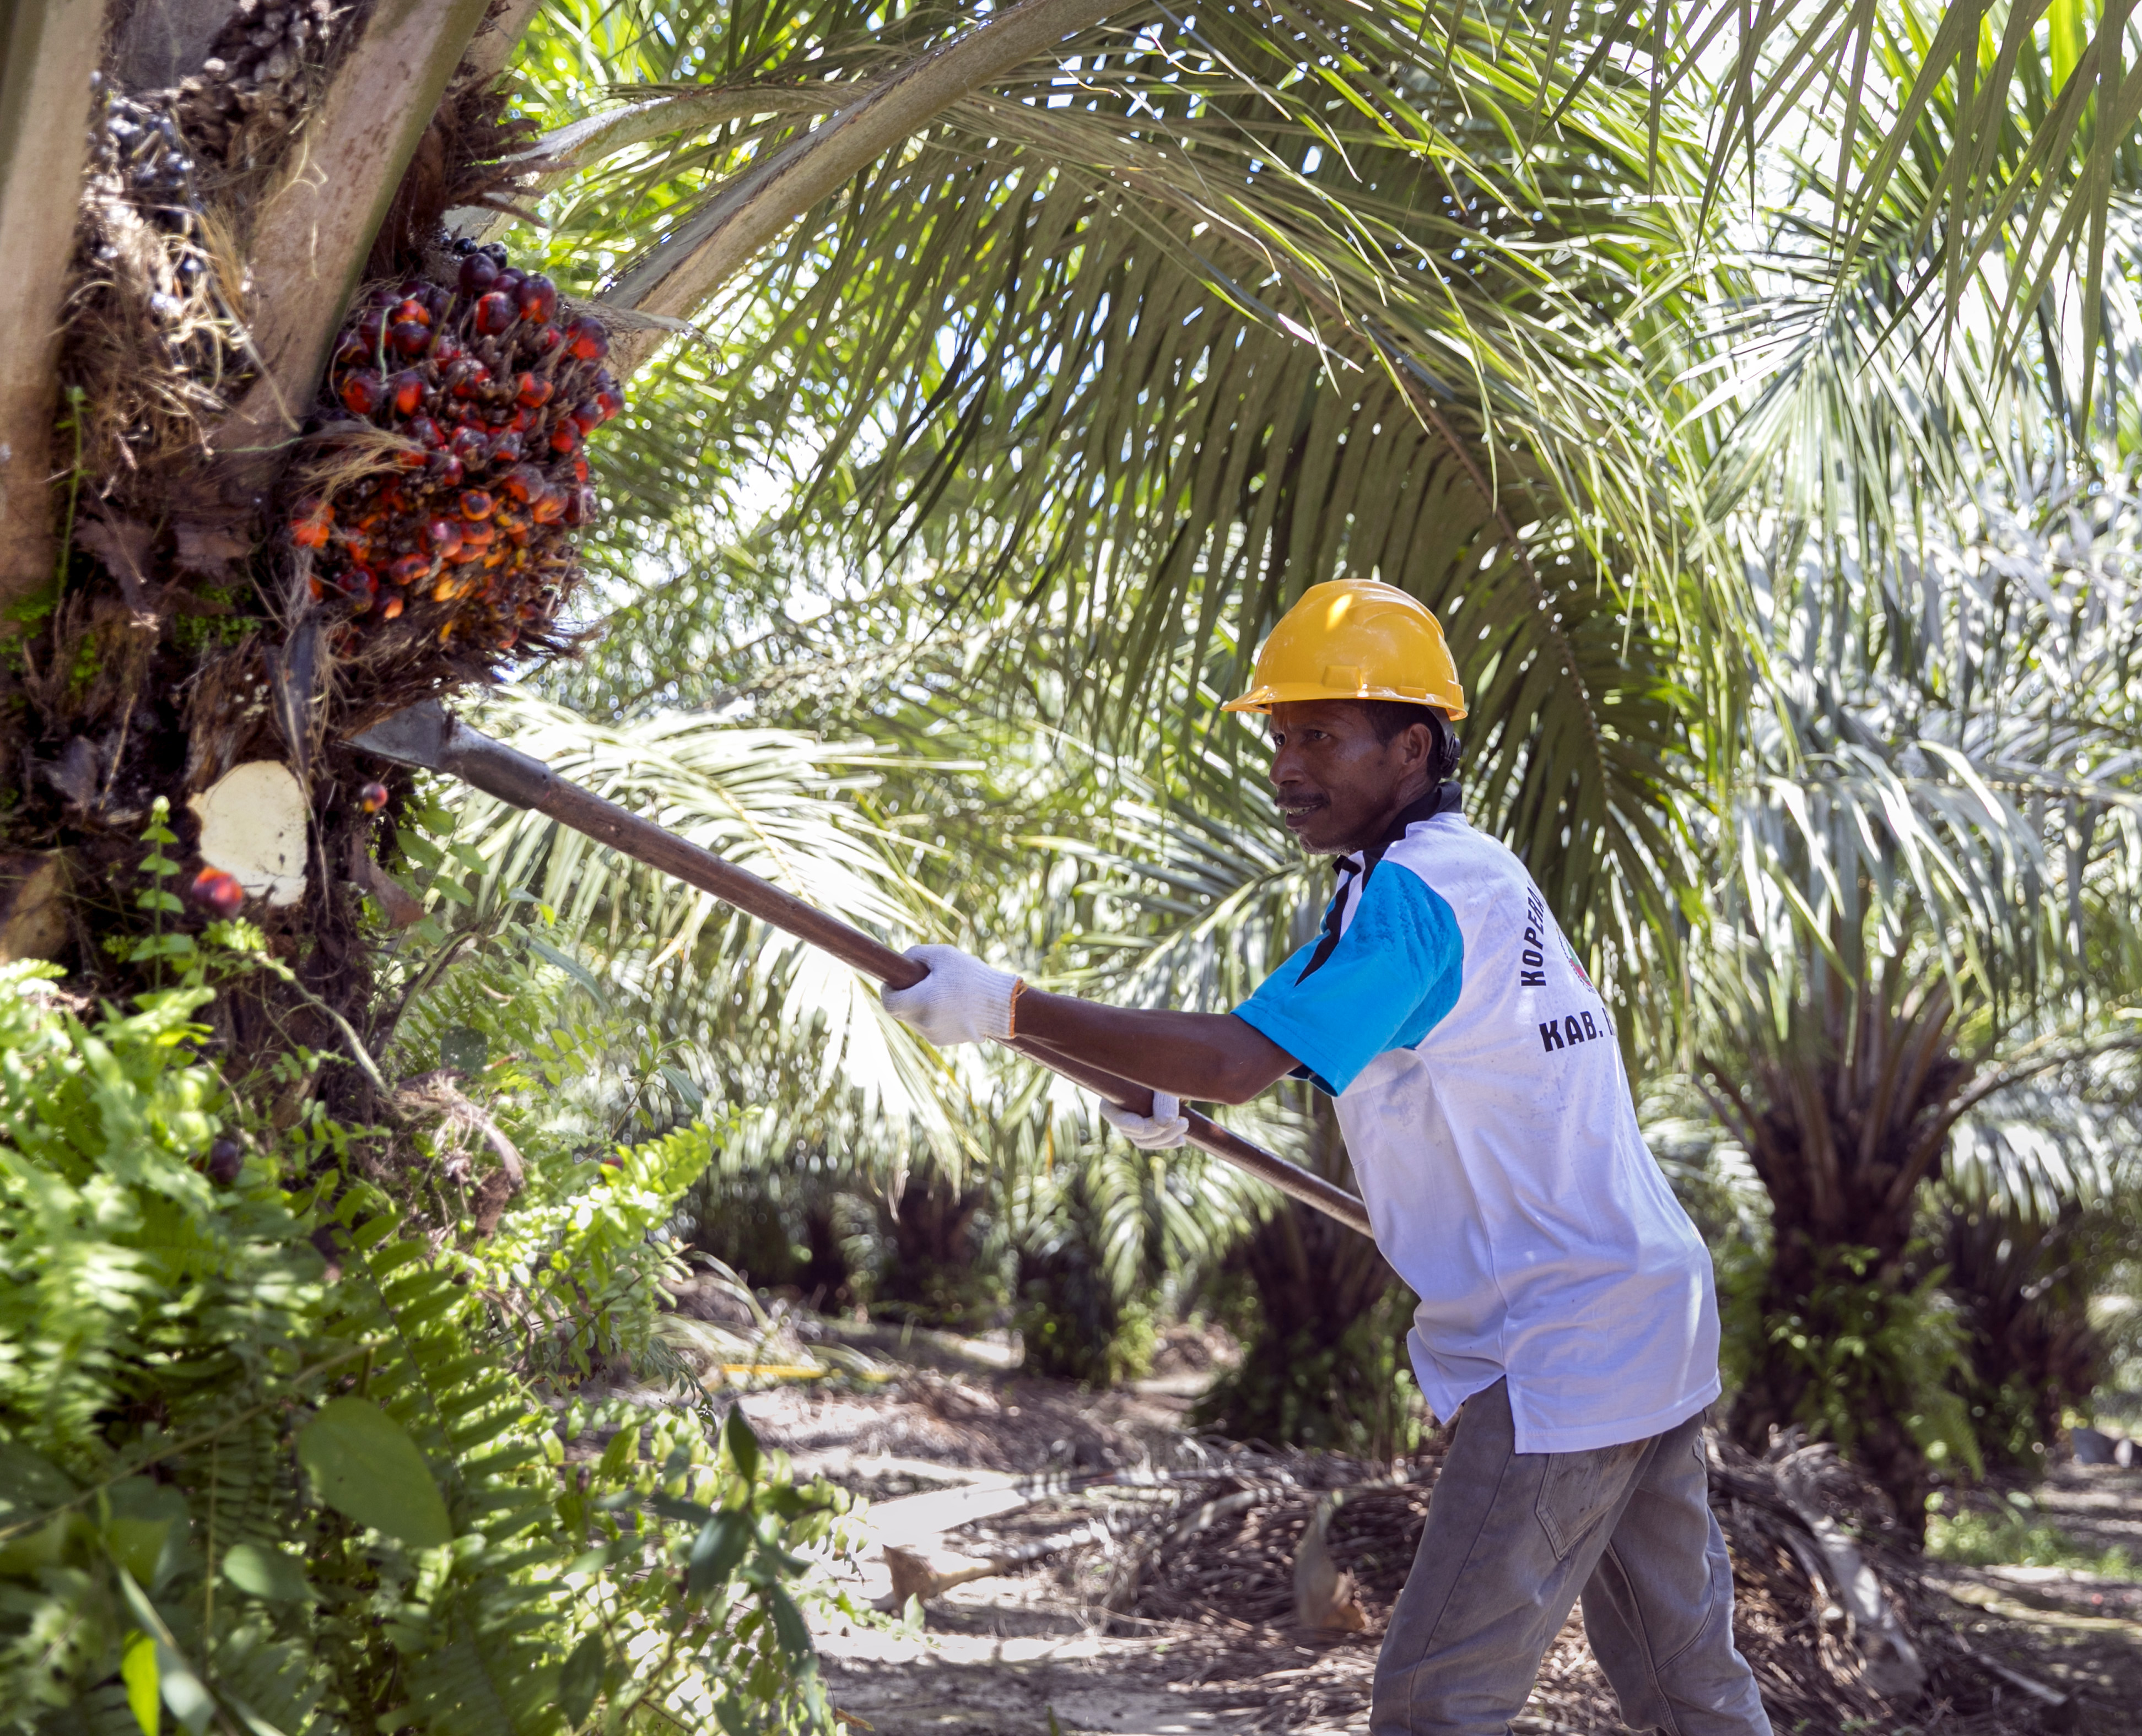 Worker harvesting palm oil fruit